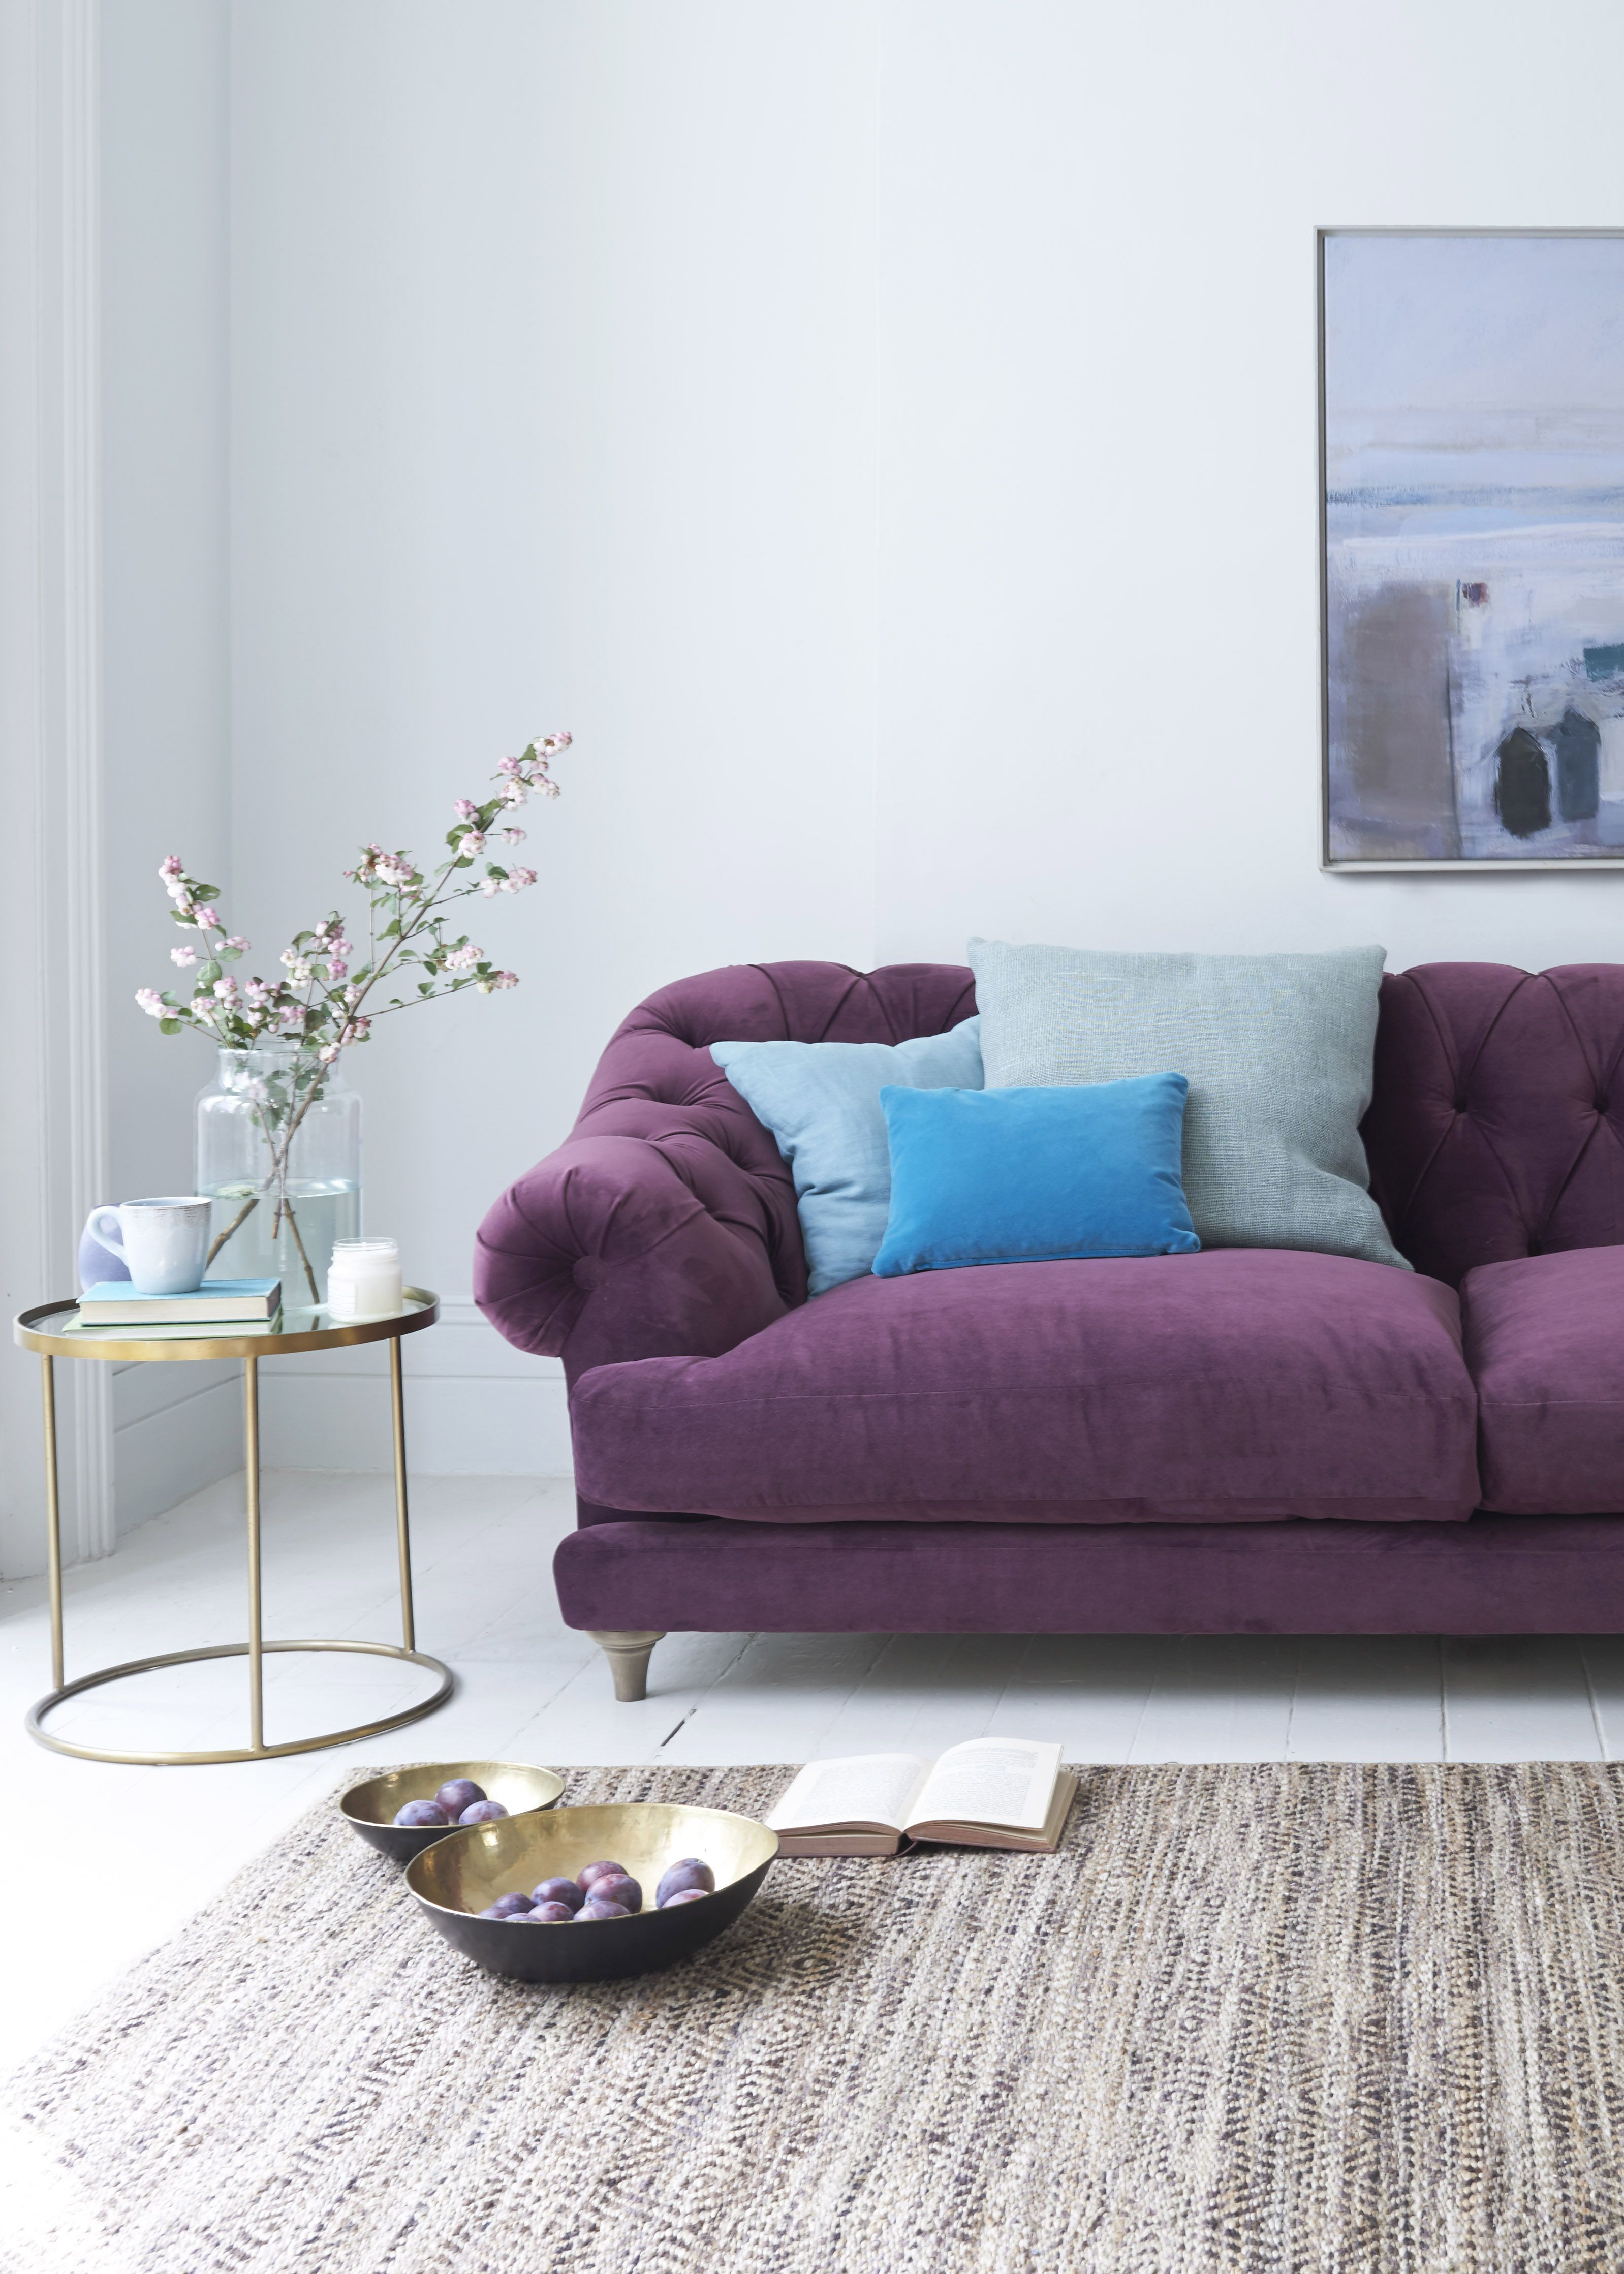 Loaf   Bagsie Sofa In Grape Clever Velvet From £1,795